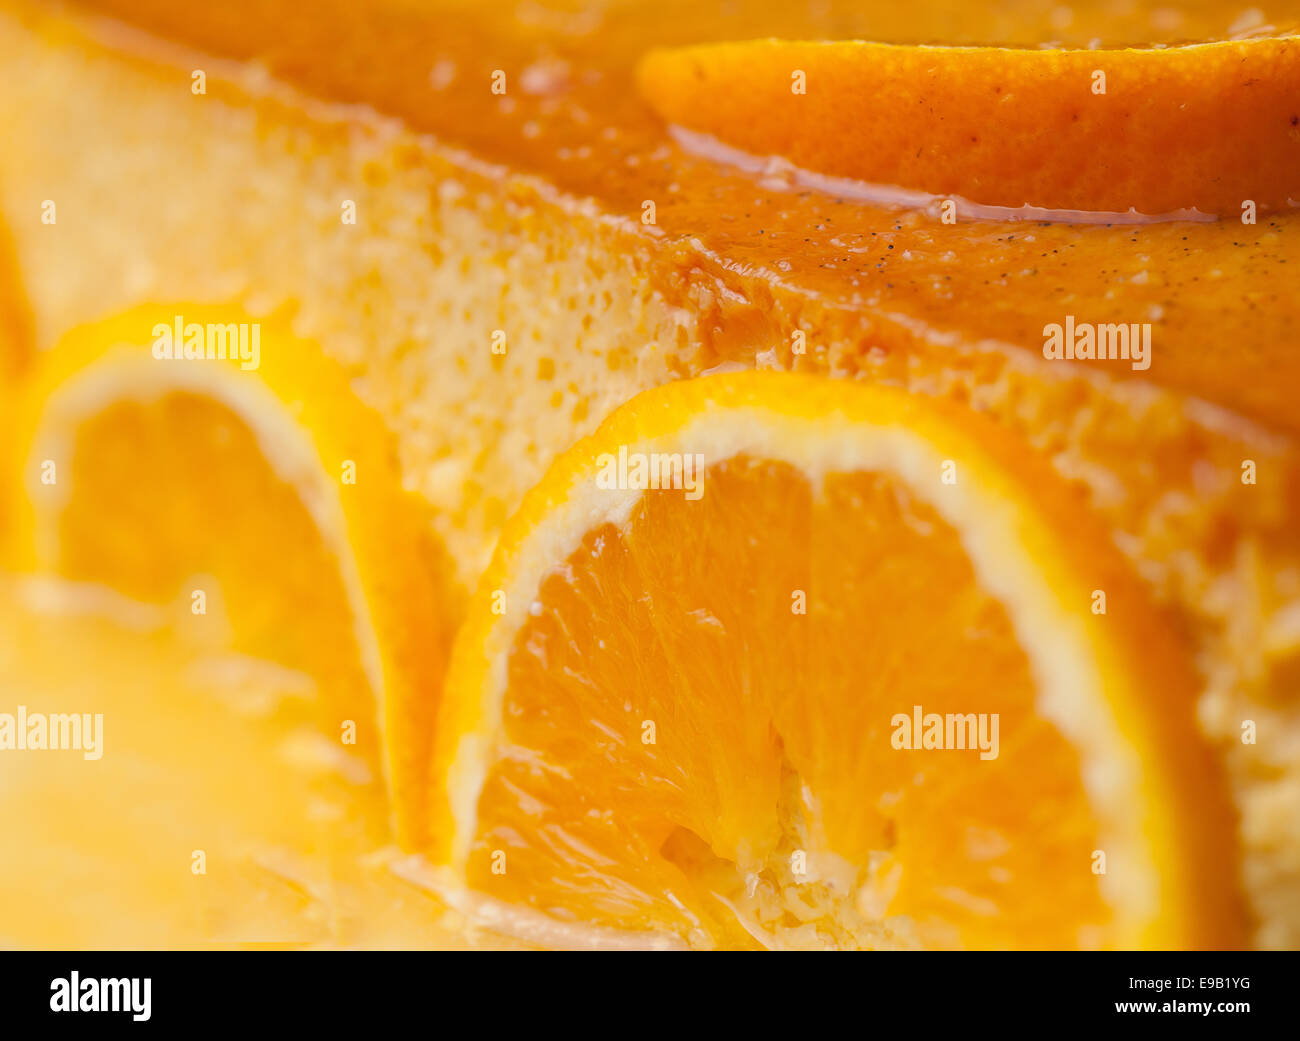 Orange custard in a studio shot. A delicious dessert. - Stock Image